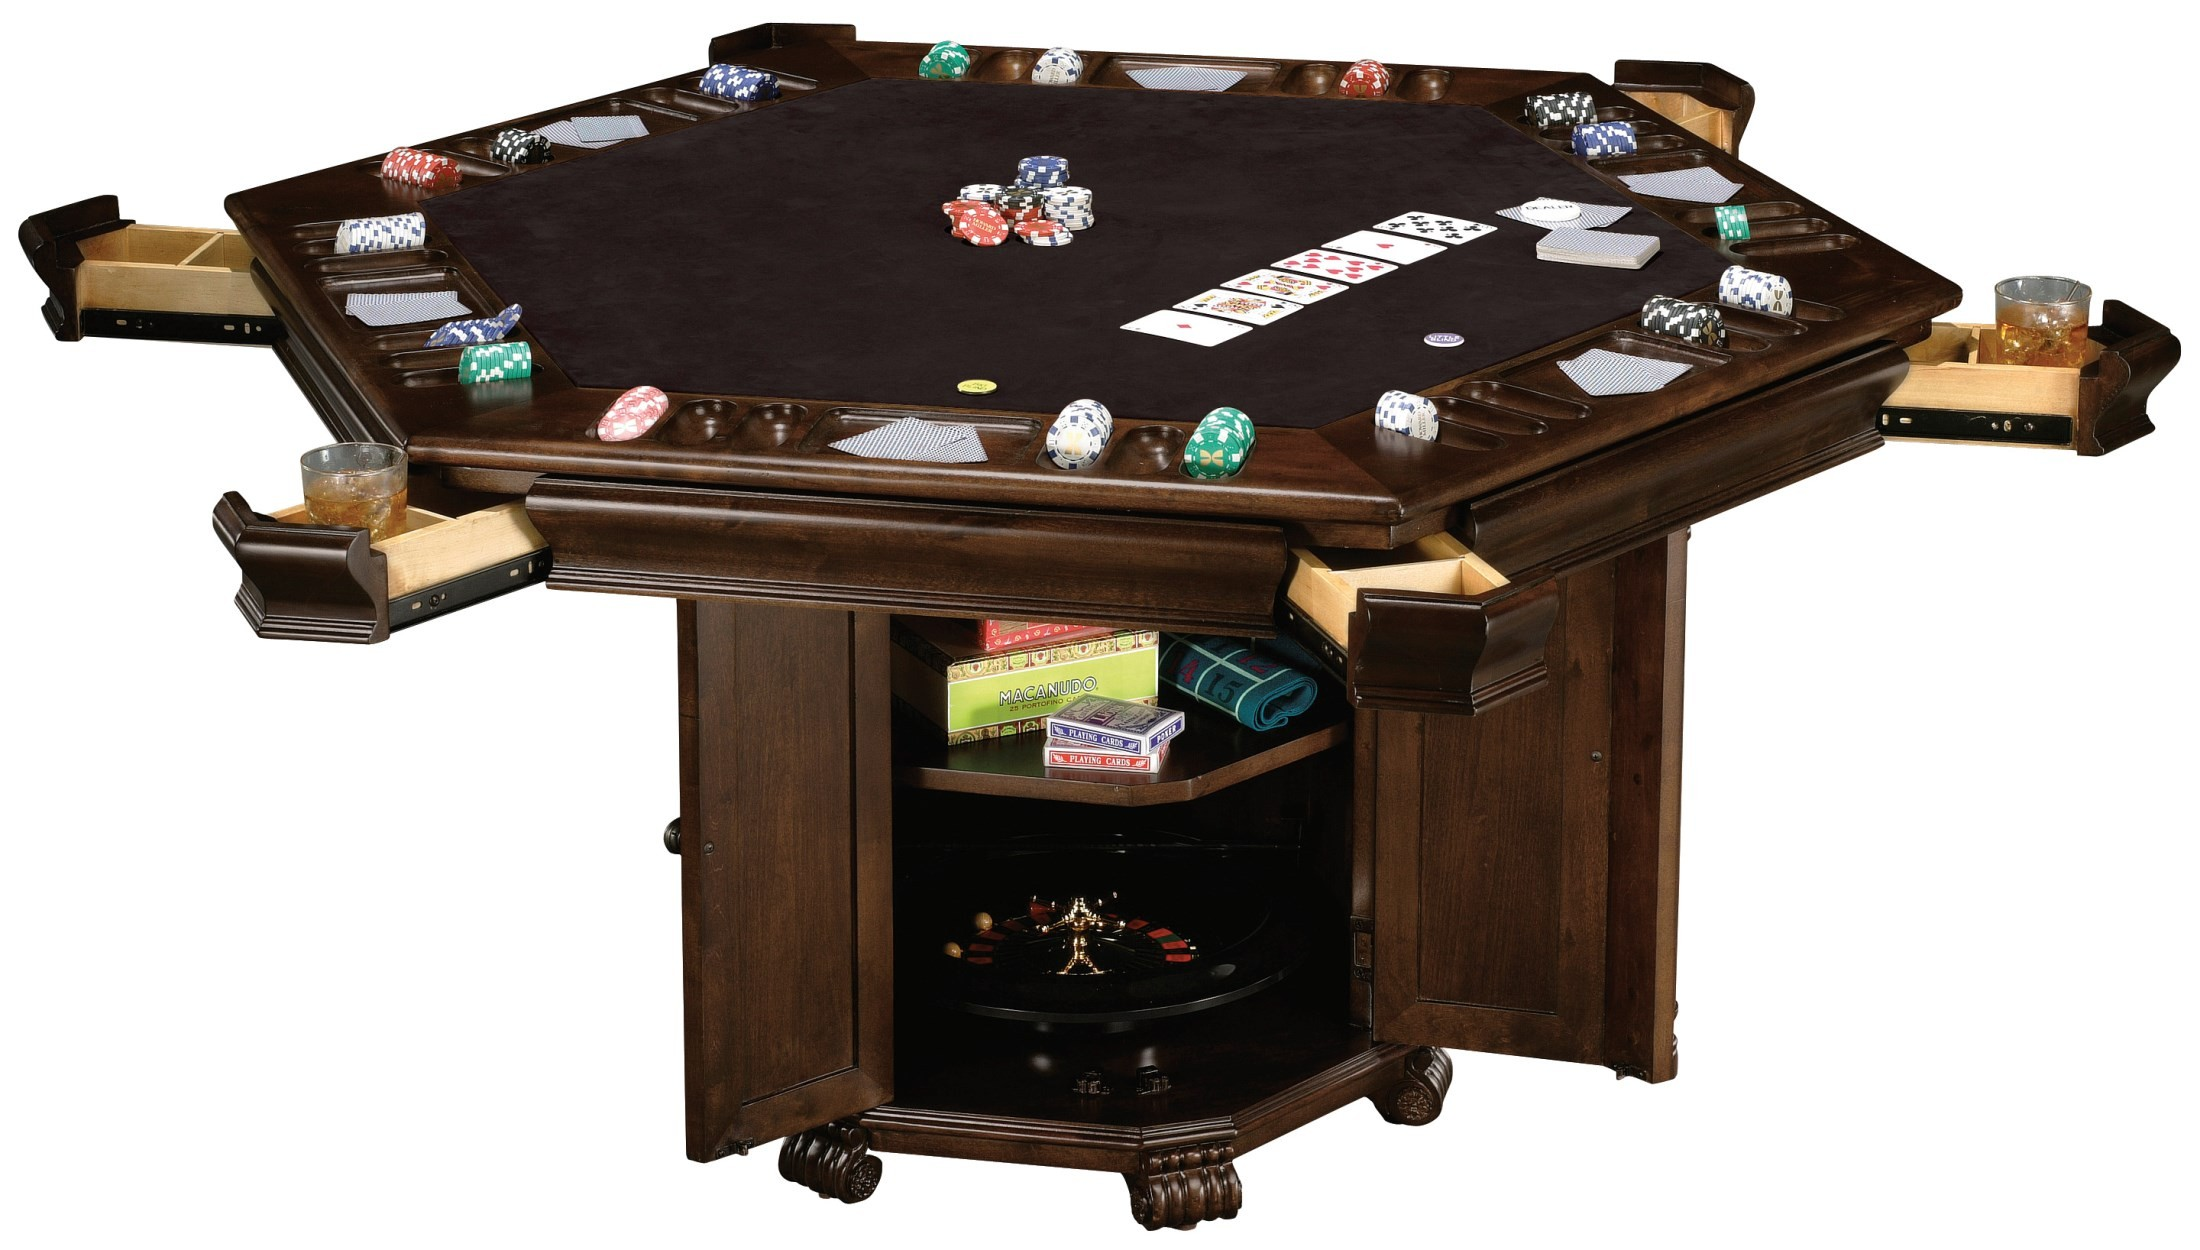 Niagara pub game table from howard miller 699013 for 10 games in 1 table